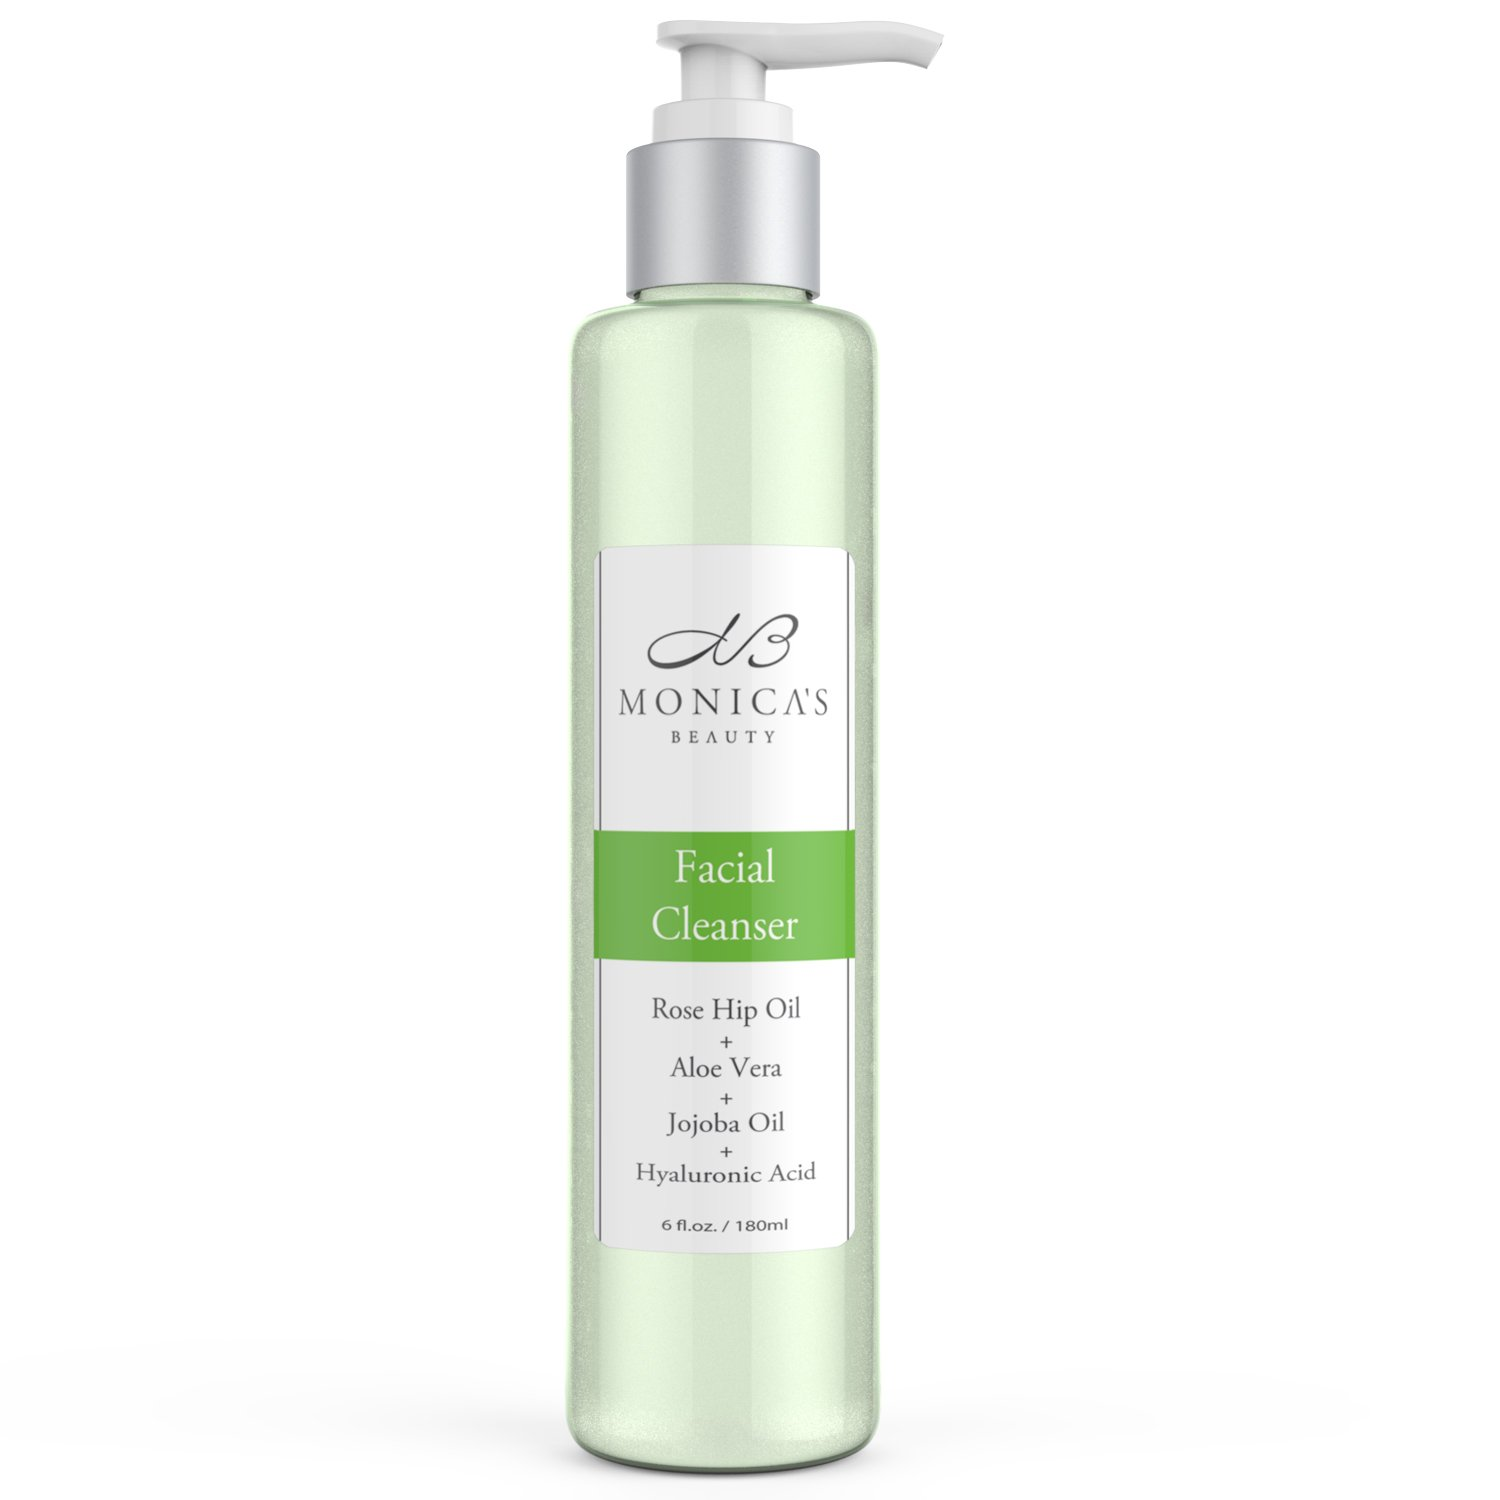 Monica's Beauty Facial Cleanser with Anti-Aging Hyaluronic Acid, Clarifying Tea Tree Oil, and Soothing Aloe Vera, 6 fl. oz.